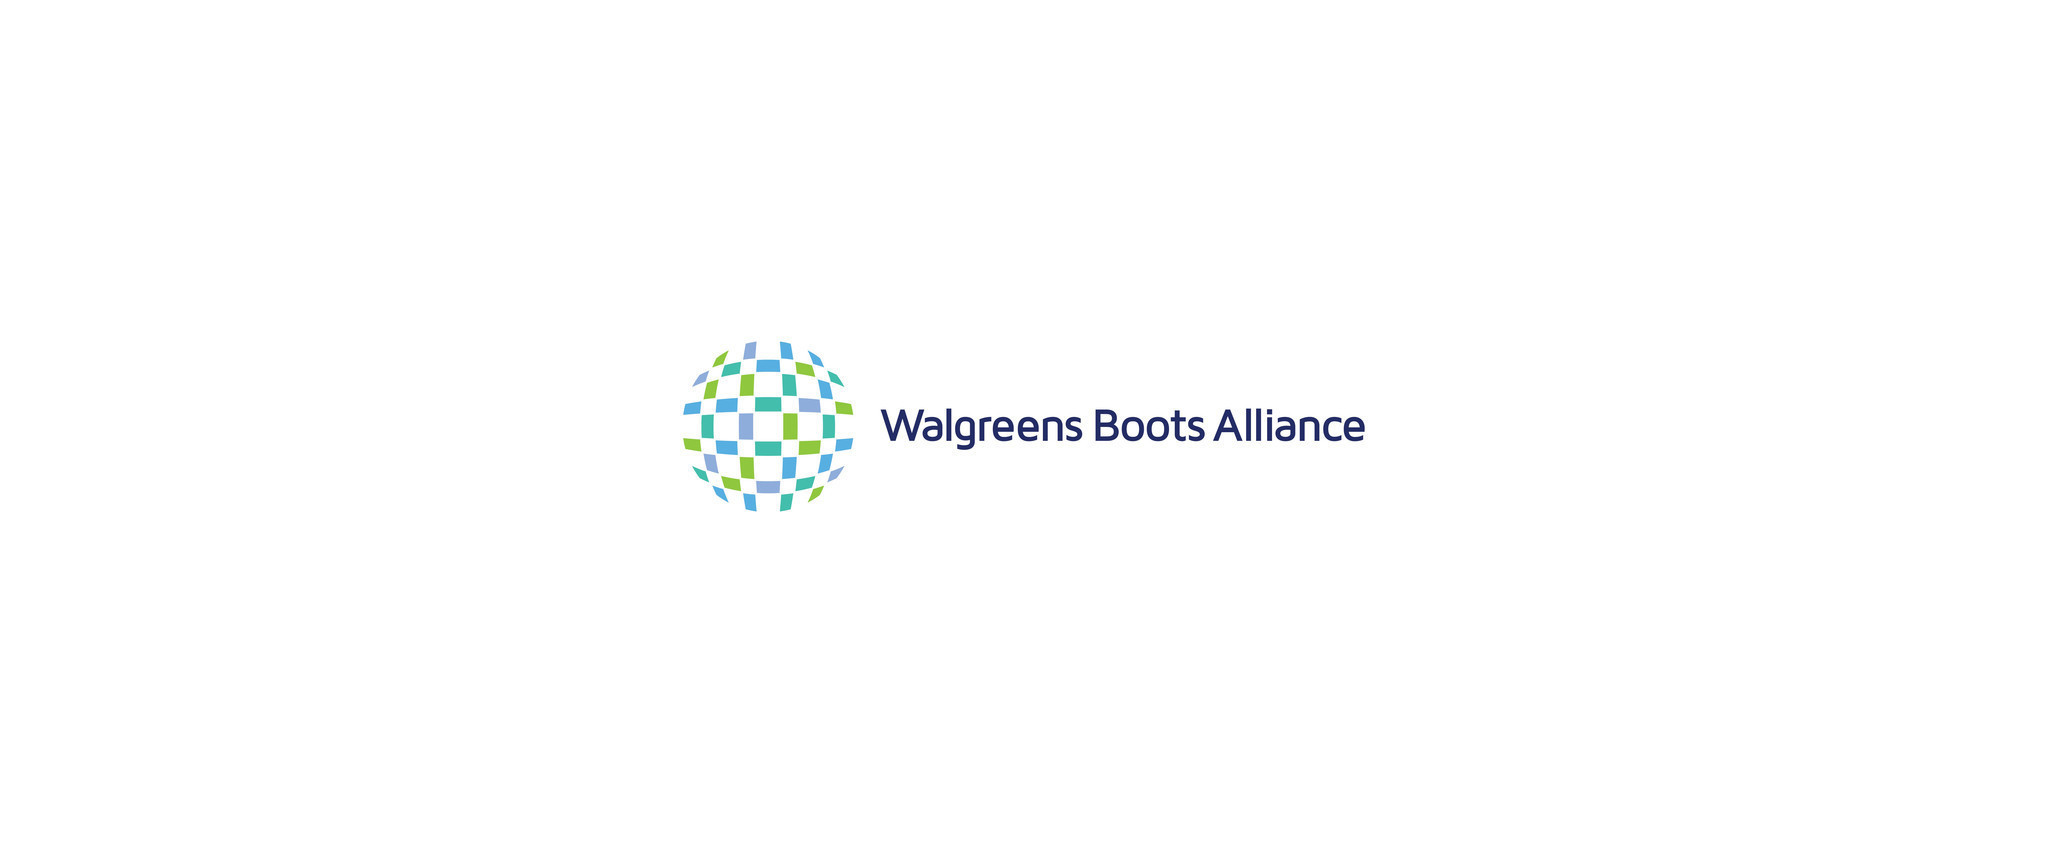 Vote  What do you think of the new Walgreens Boots logo    Chicago Tribune. Vote  What do you think of the new Walgreens Boots logo    Chicago